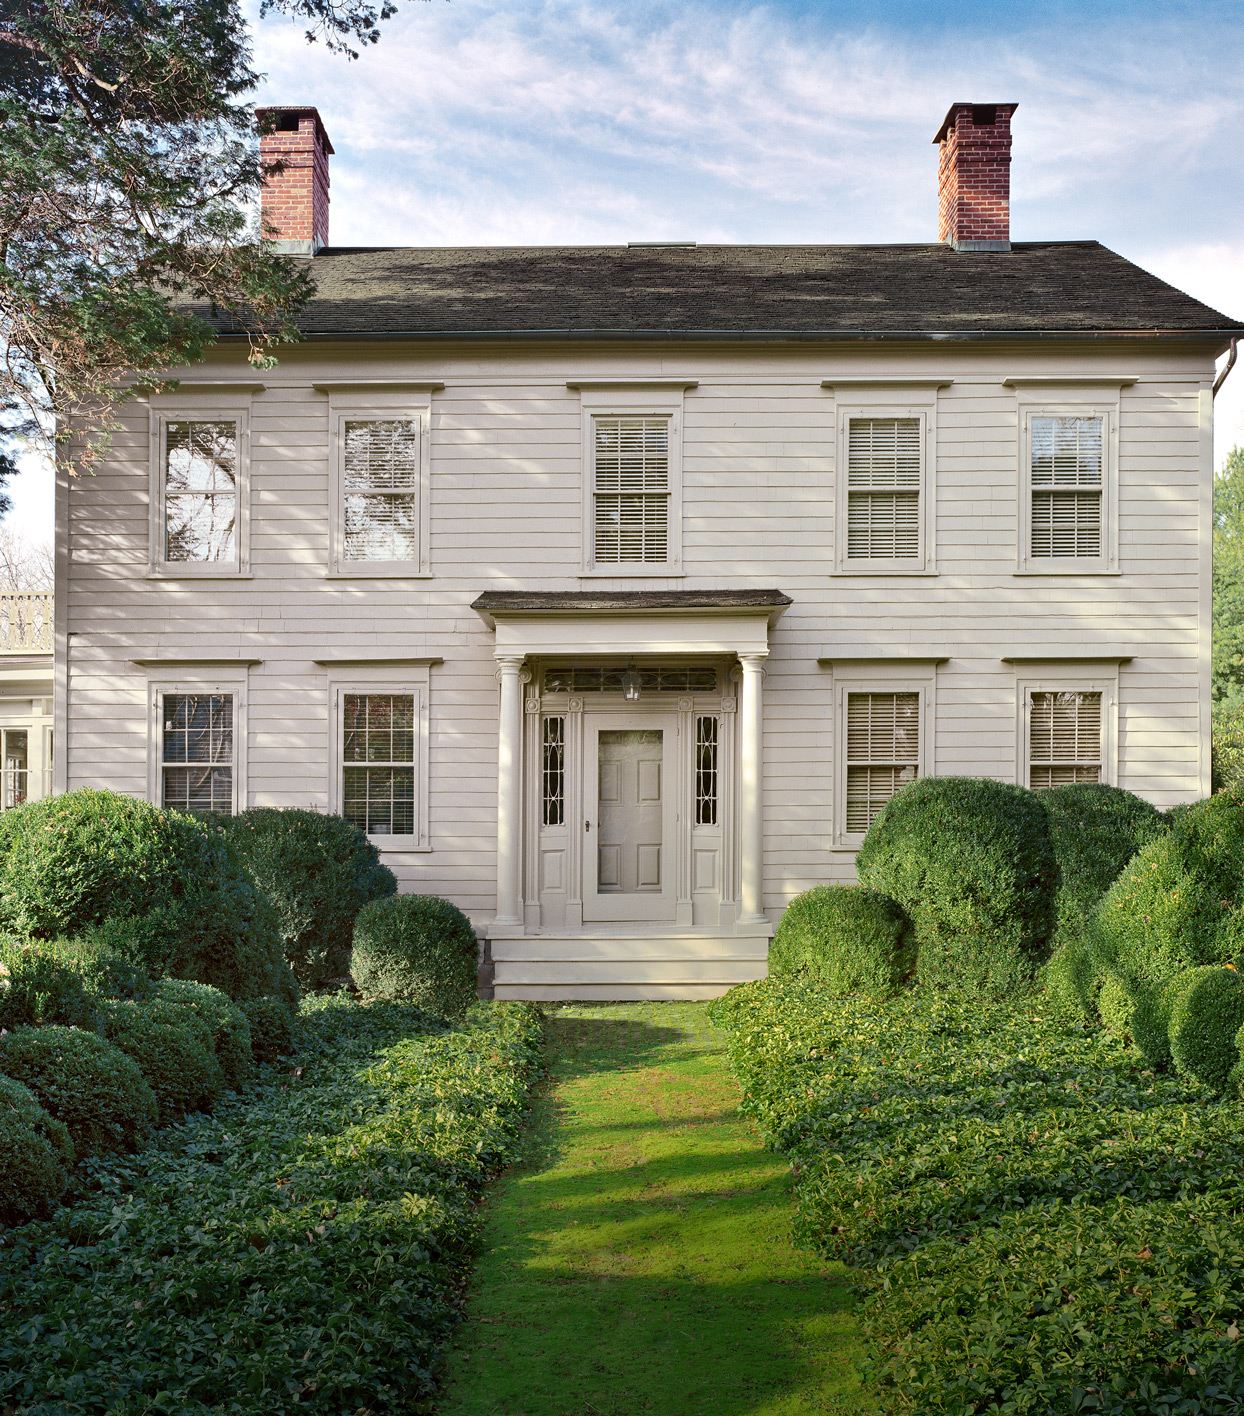 How To Choose The Right Exterior Paint Colors For Your Home Based On Its Architectural Style Martha Stewart